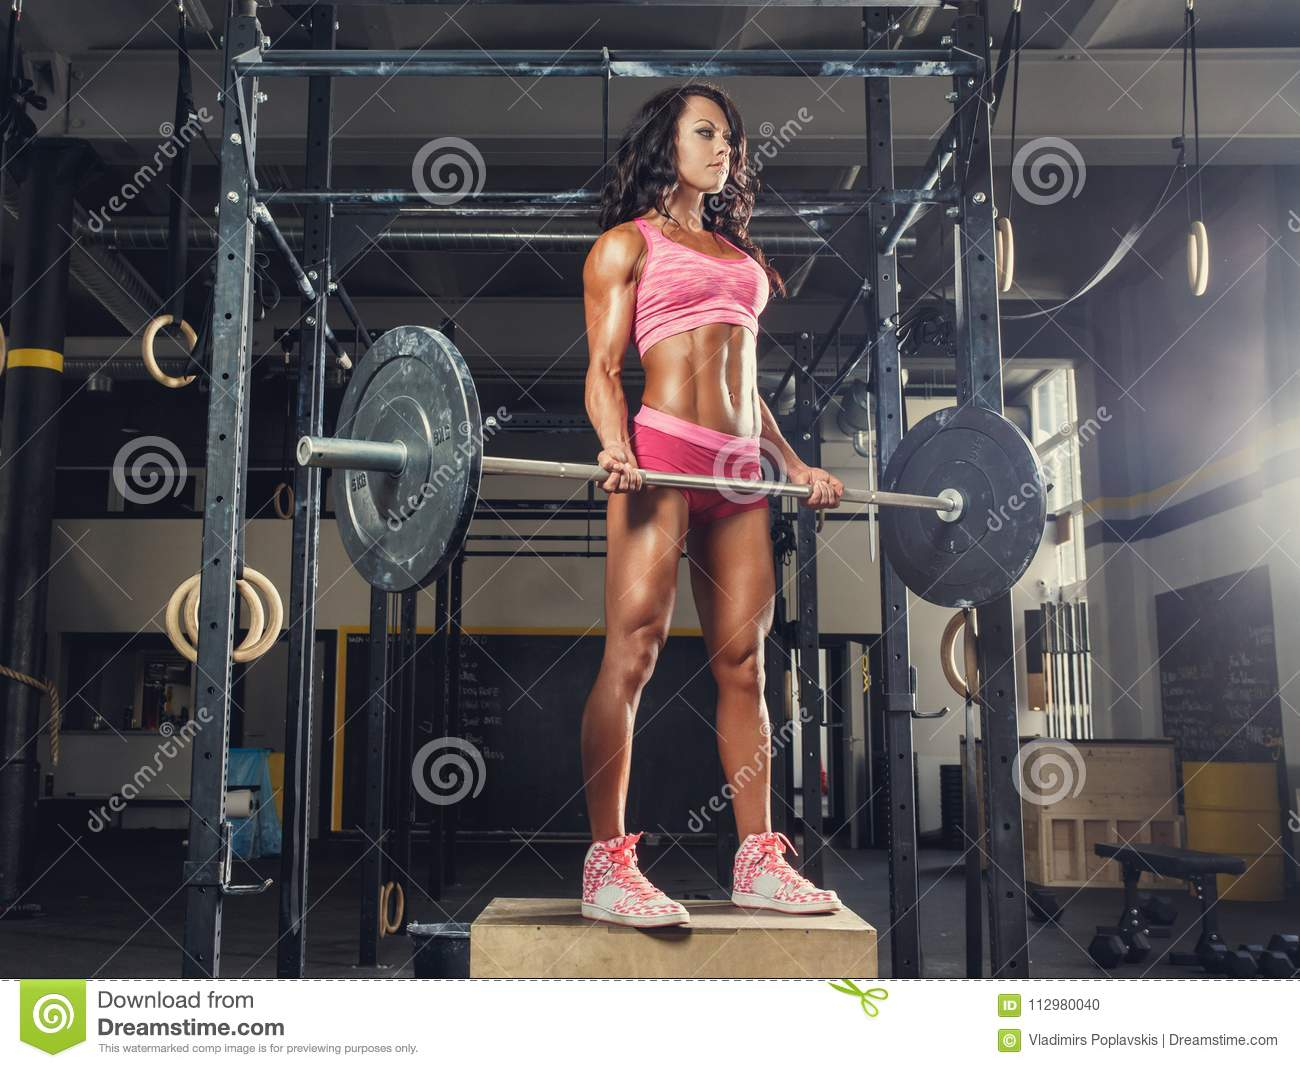 Female fitness model in a pink sportswear holding barbell in a gym club.